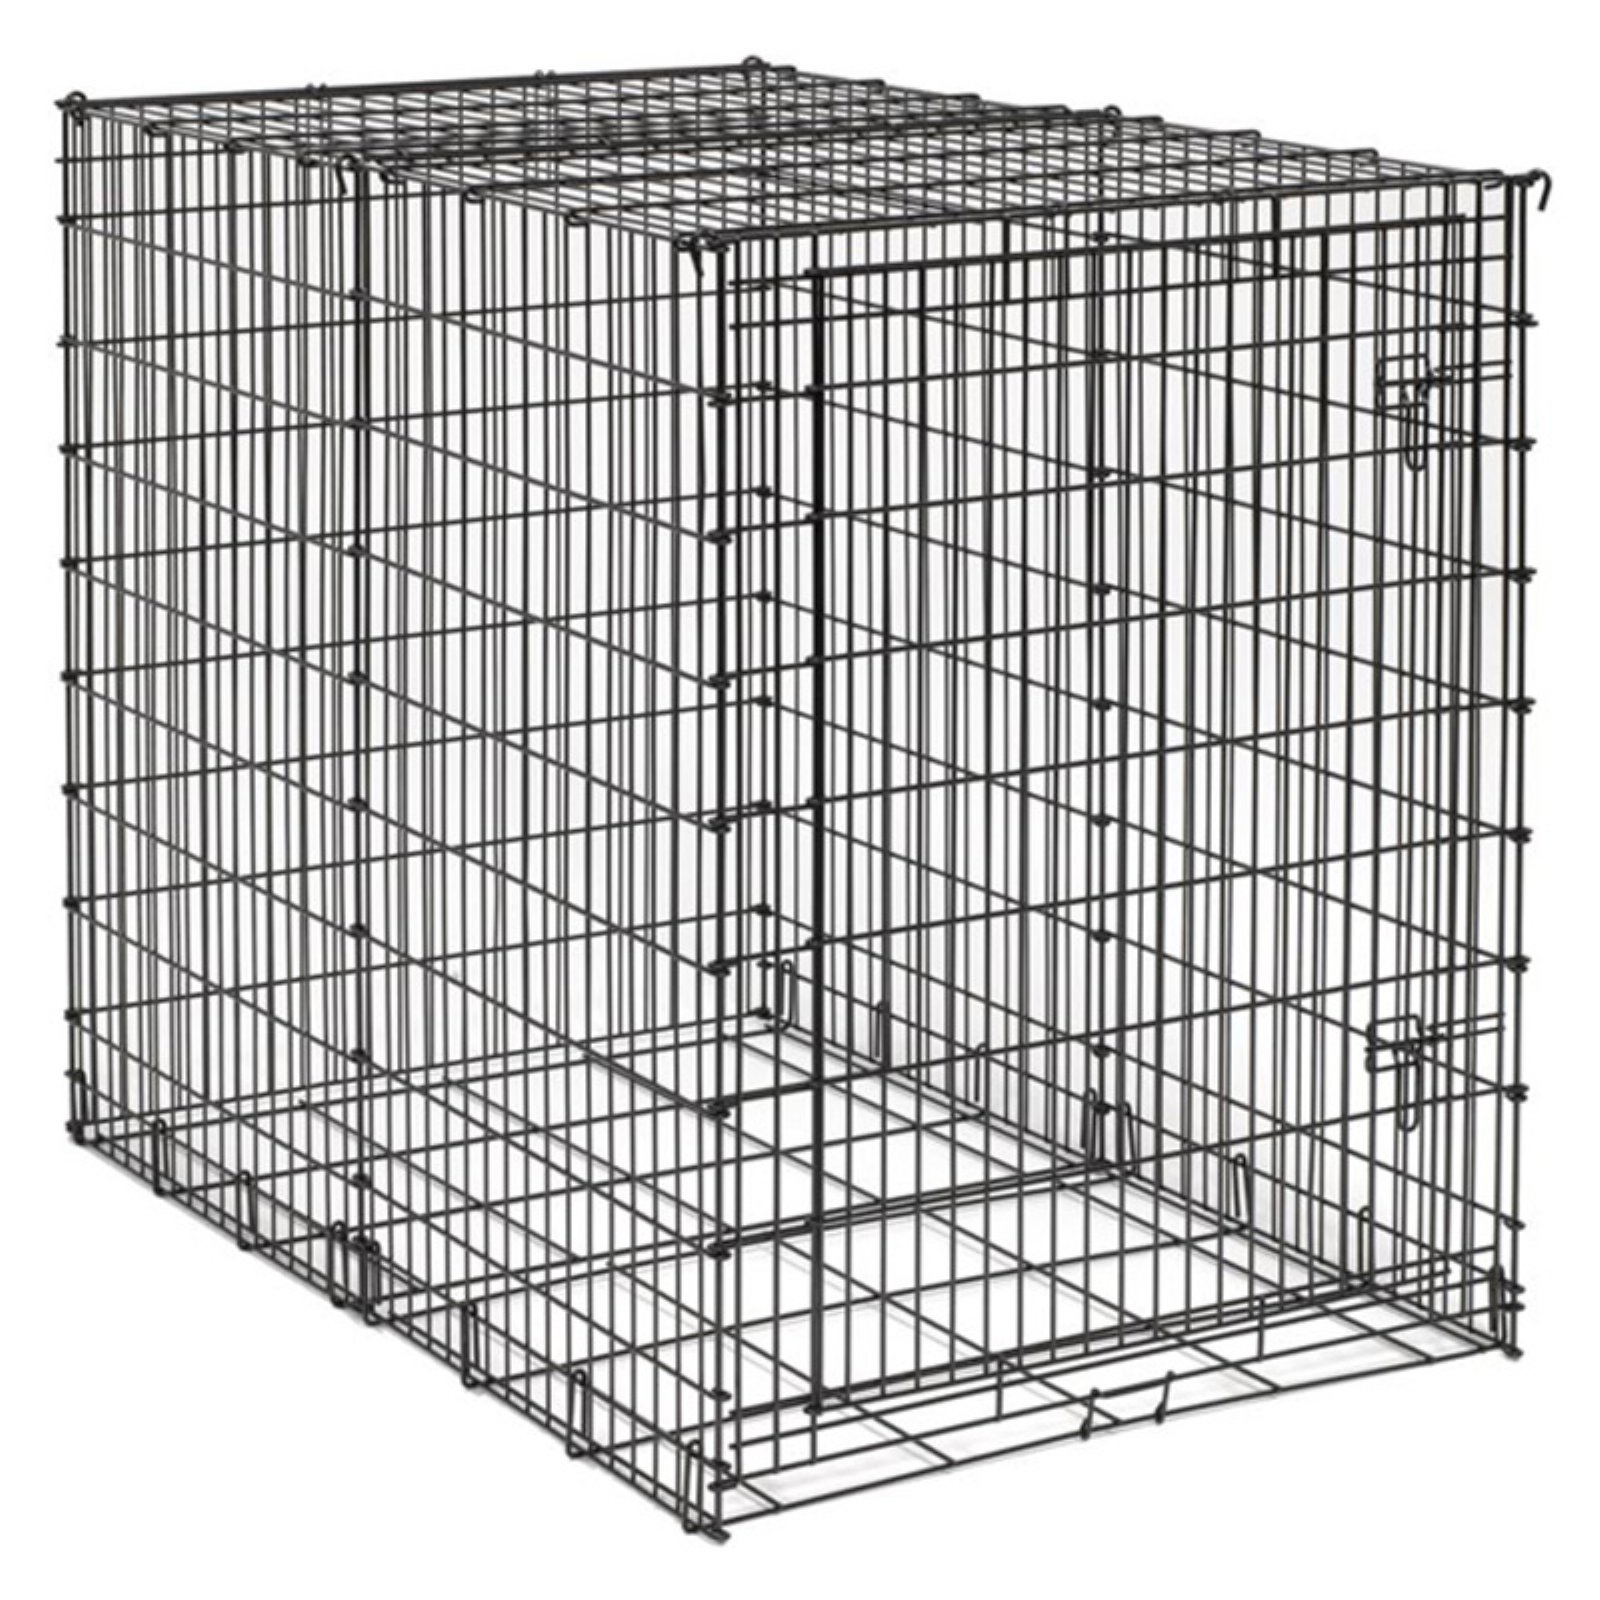 """Midwest Big Dog Crate, Black, 54"""" x 35"""" x 45"""" by Midwest"""